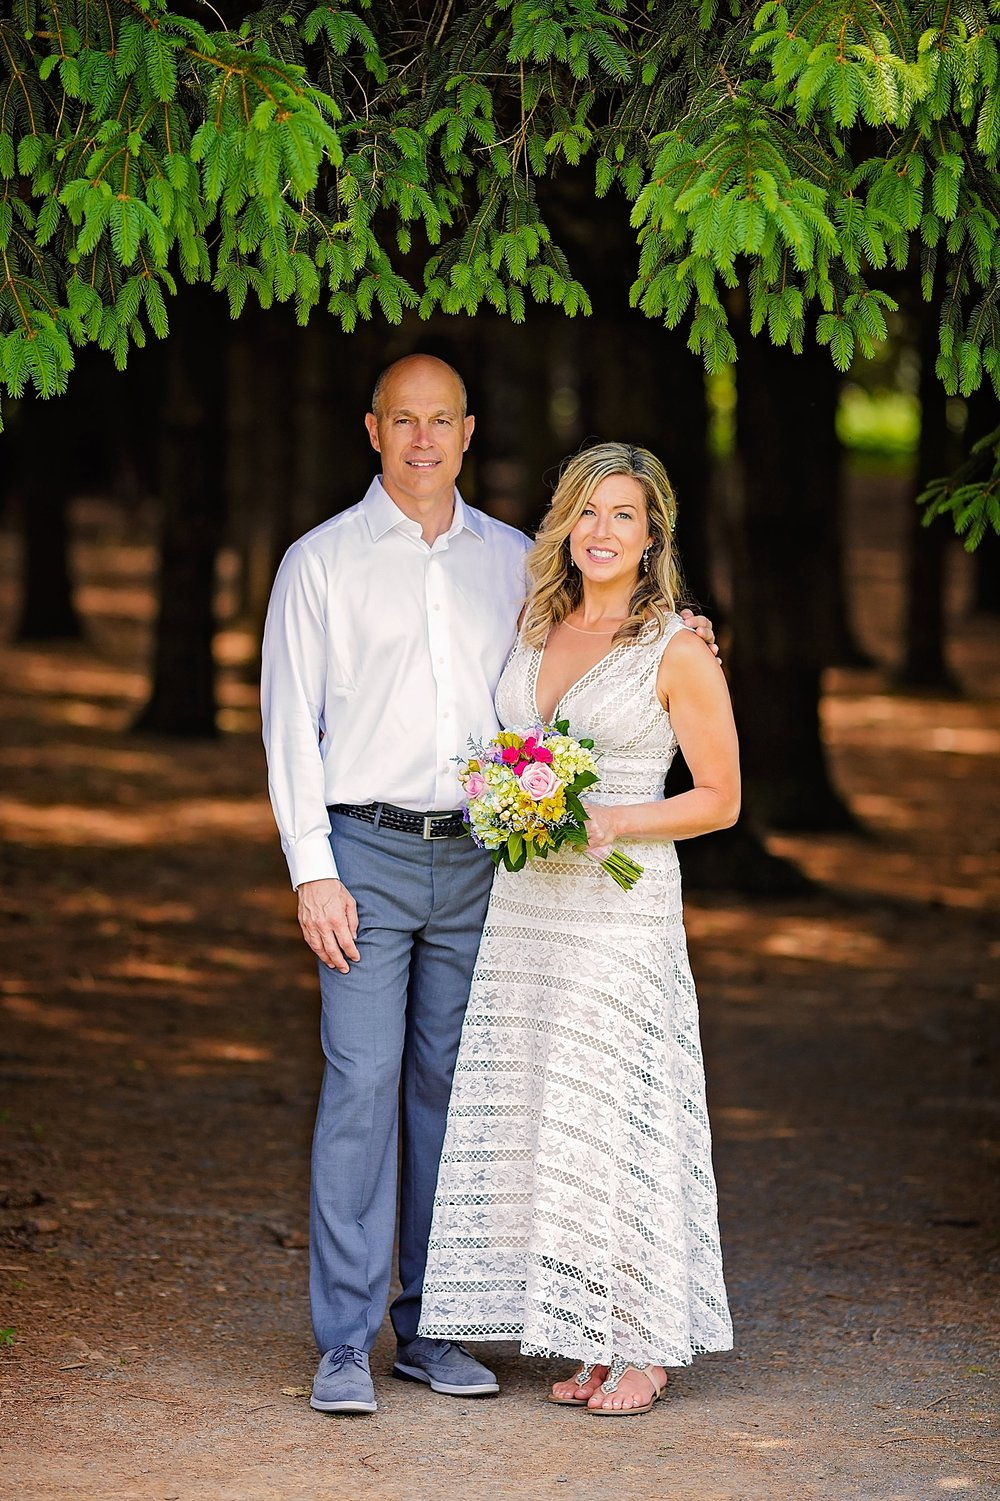 Wyomissing Park Berks County intimate summer wedding ceremony photographer